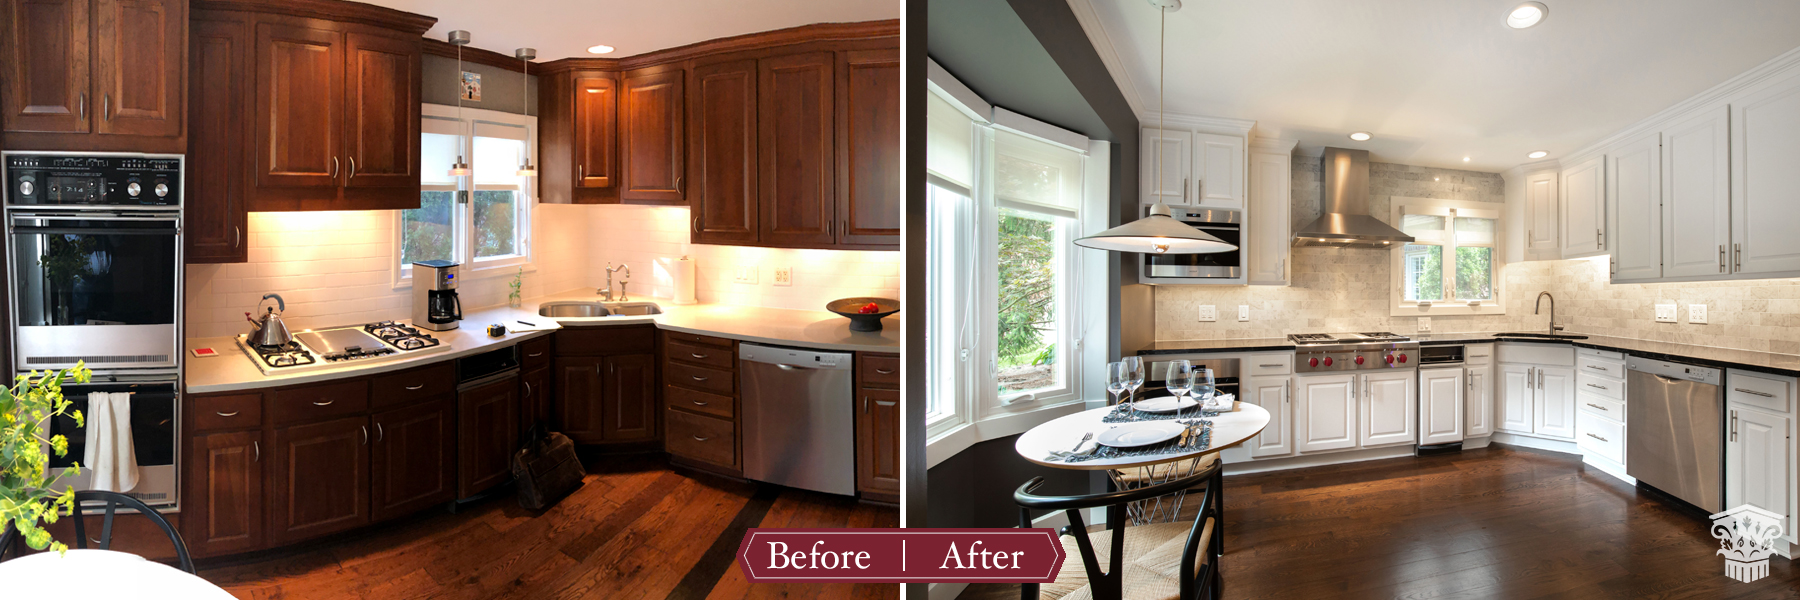 Traditional to Luxe Kitchen Before and After Eat in Nook Area